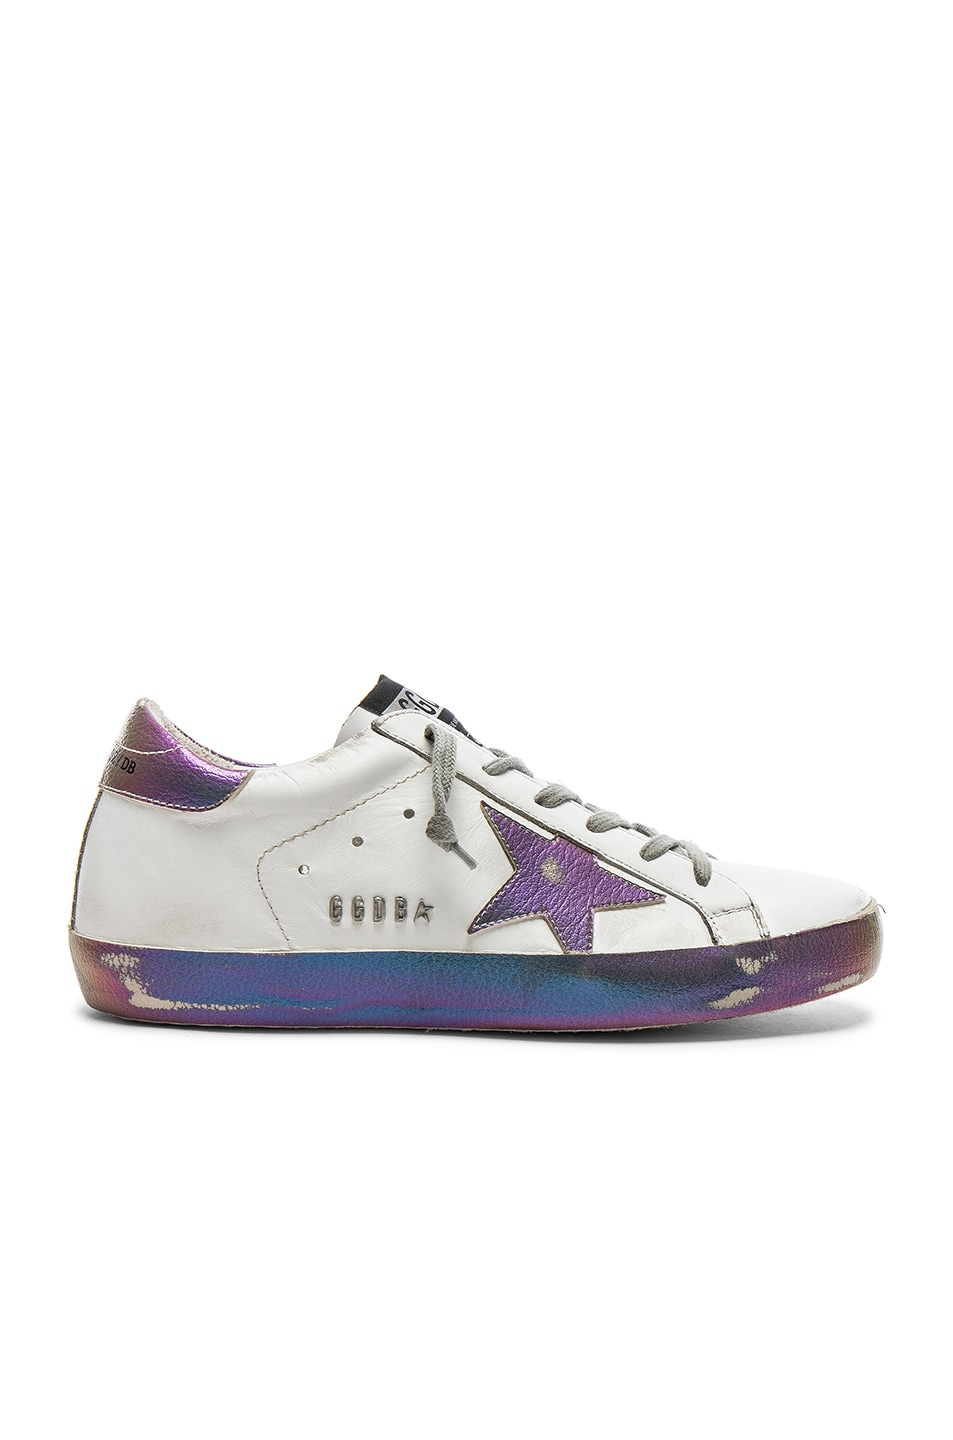 745590dbaaa9 Image 1 of Golden Goose Leather Superstar Sneakers in Sparkle White    Iridescent Star